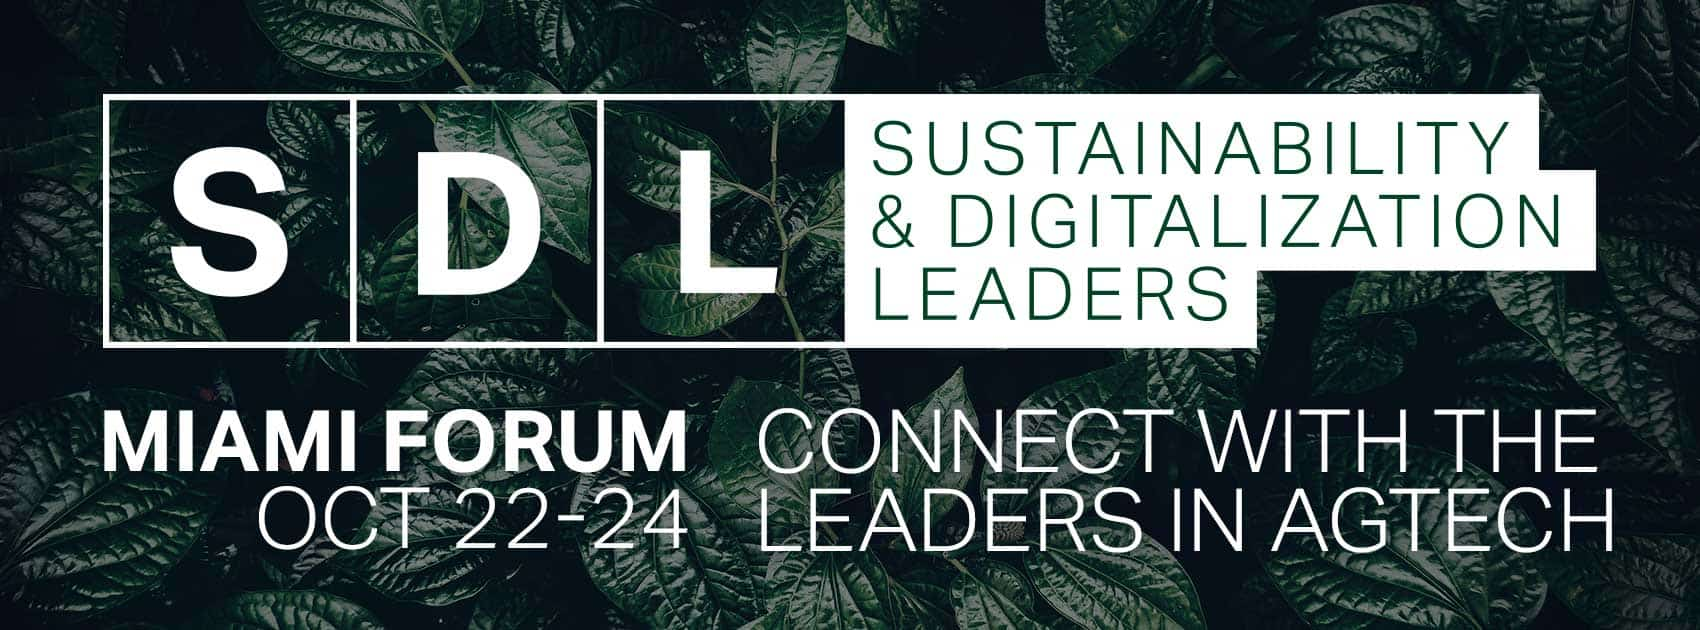 SDL Bitcoin - SDL: Executive Leadership Summit Commercializing Change in Agtech